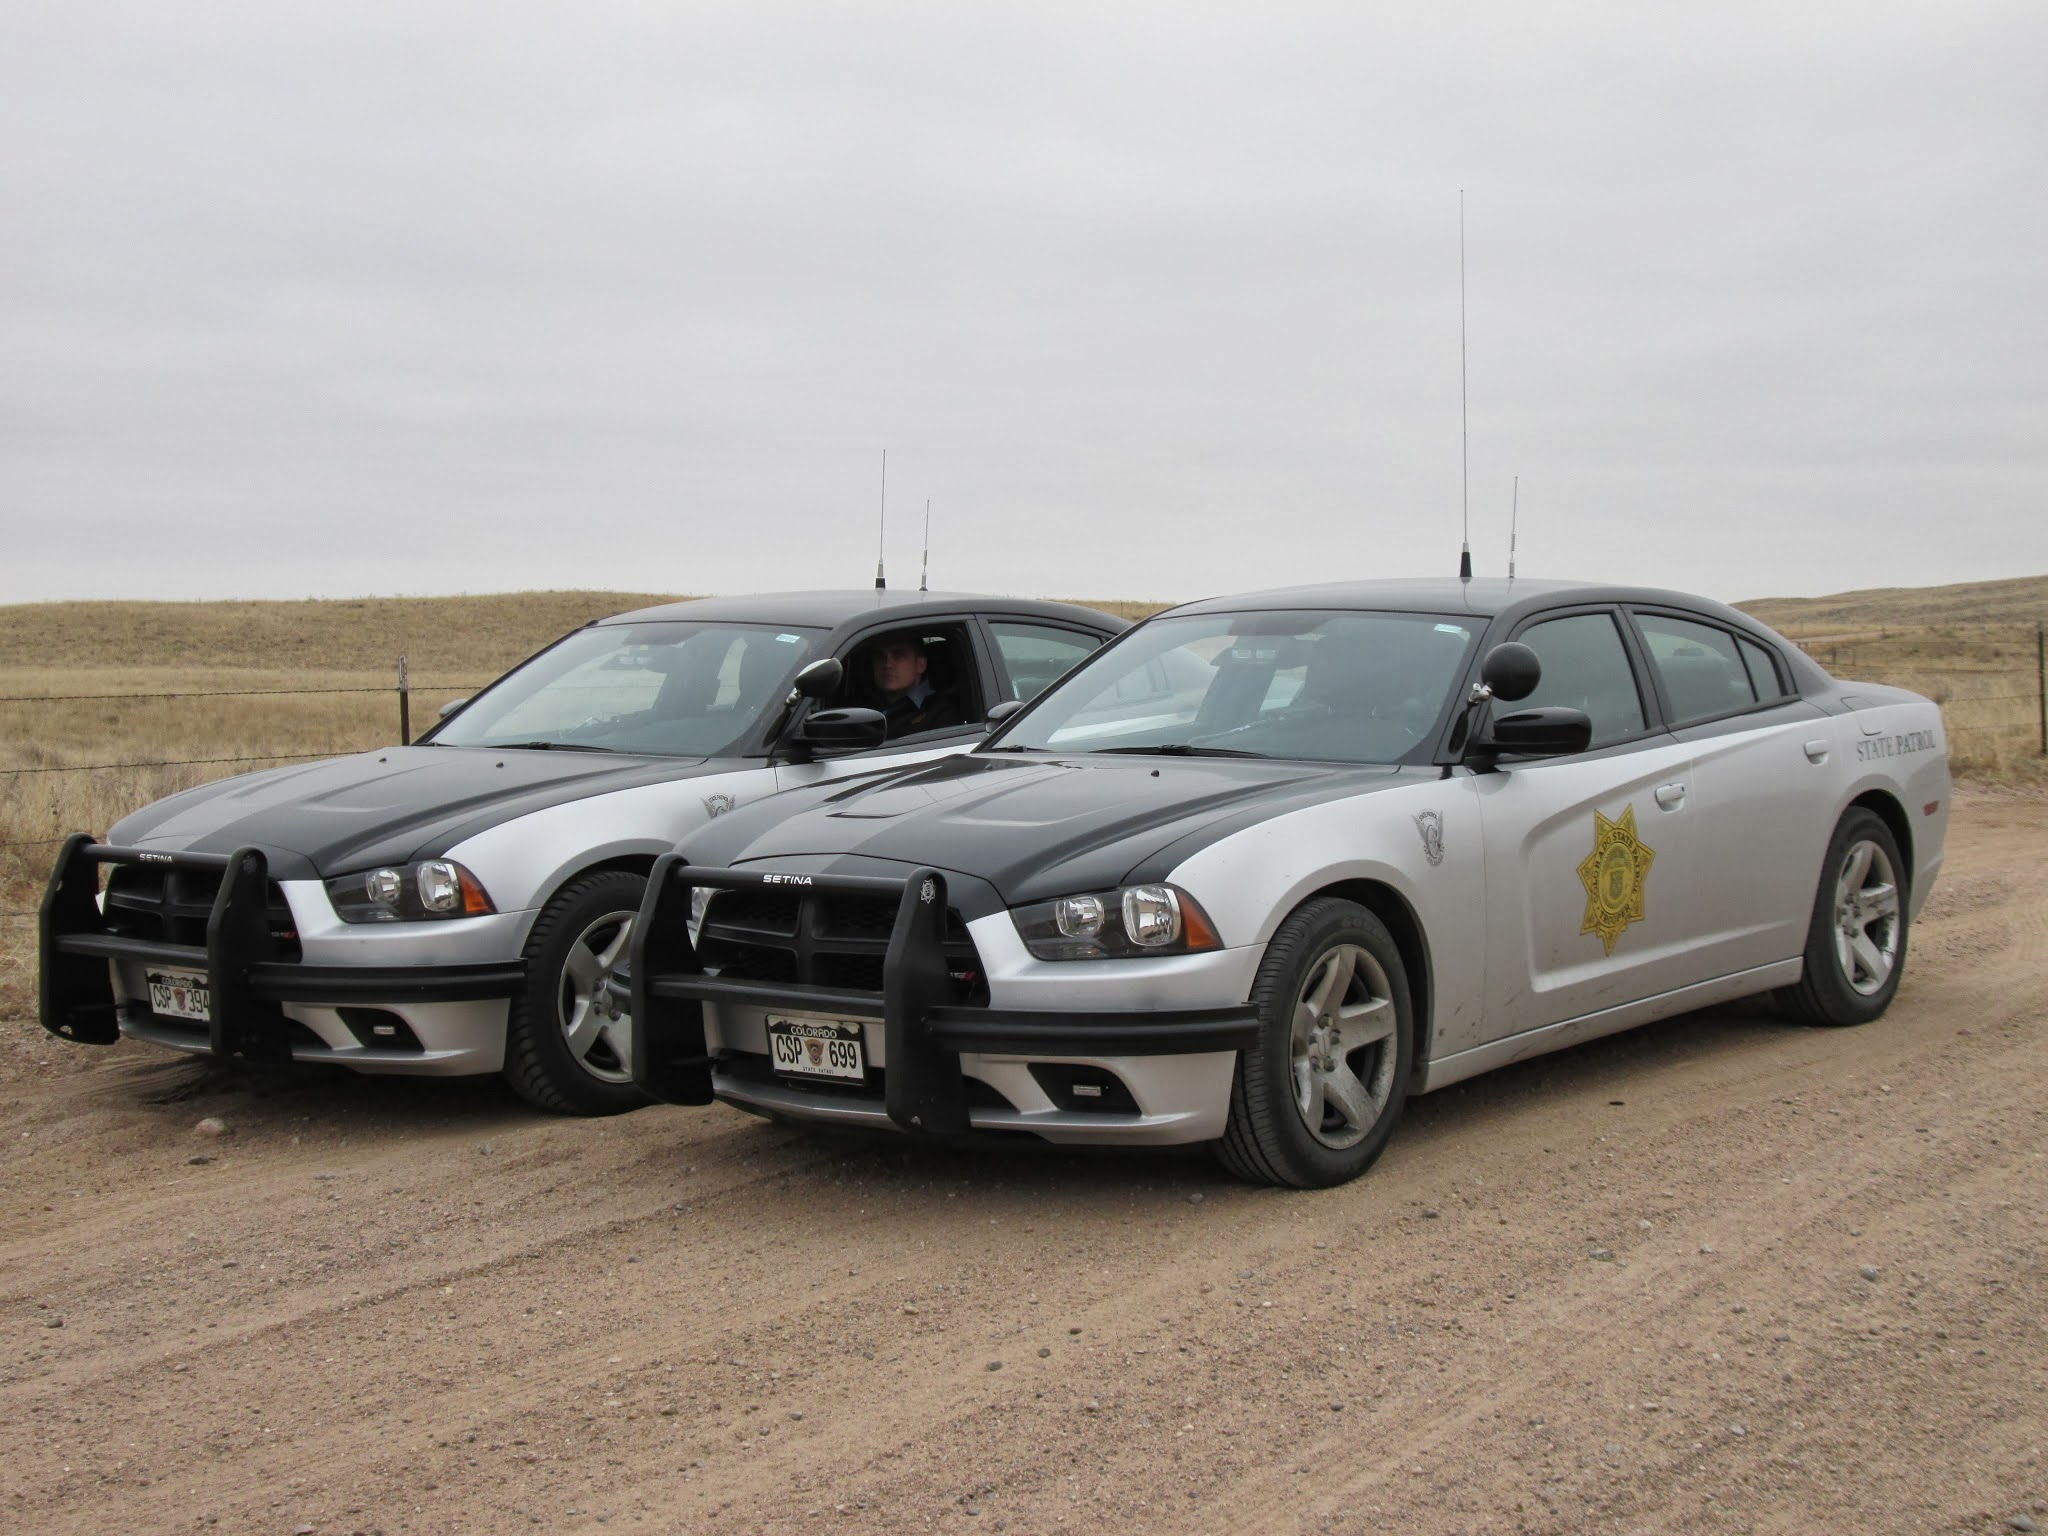 What Are The Most Used Models For Police Cars In Your